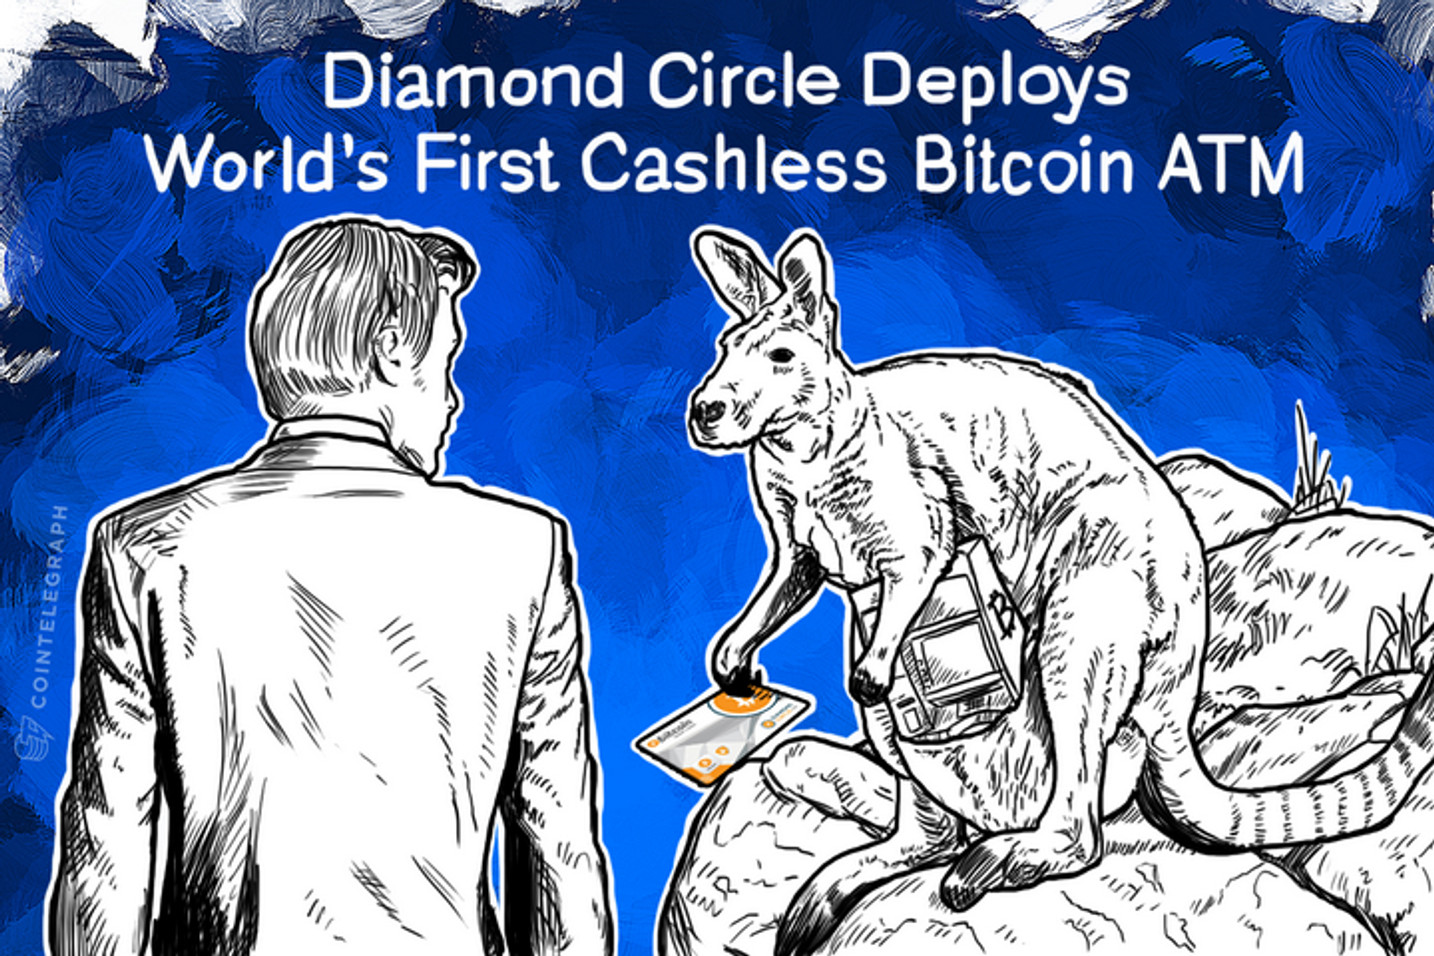 Diamond Circle Deploys World's First Cashless Bitcoin ATM